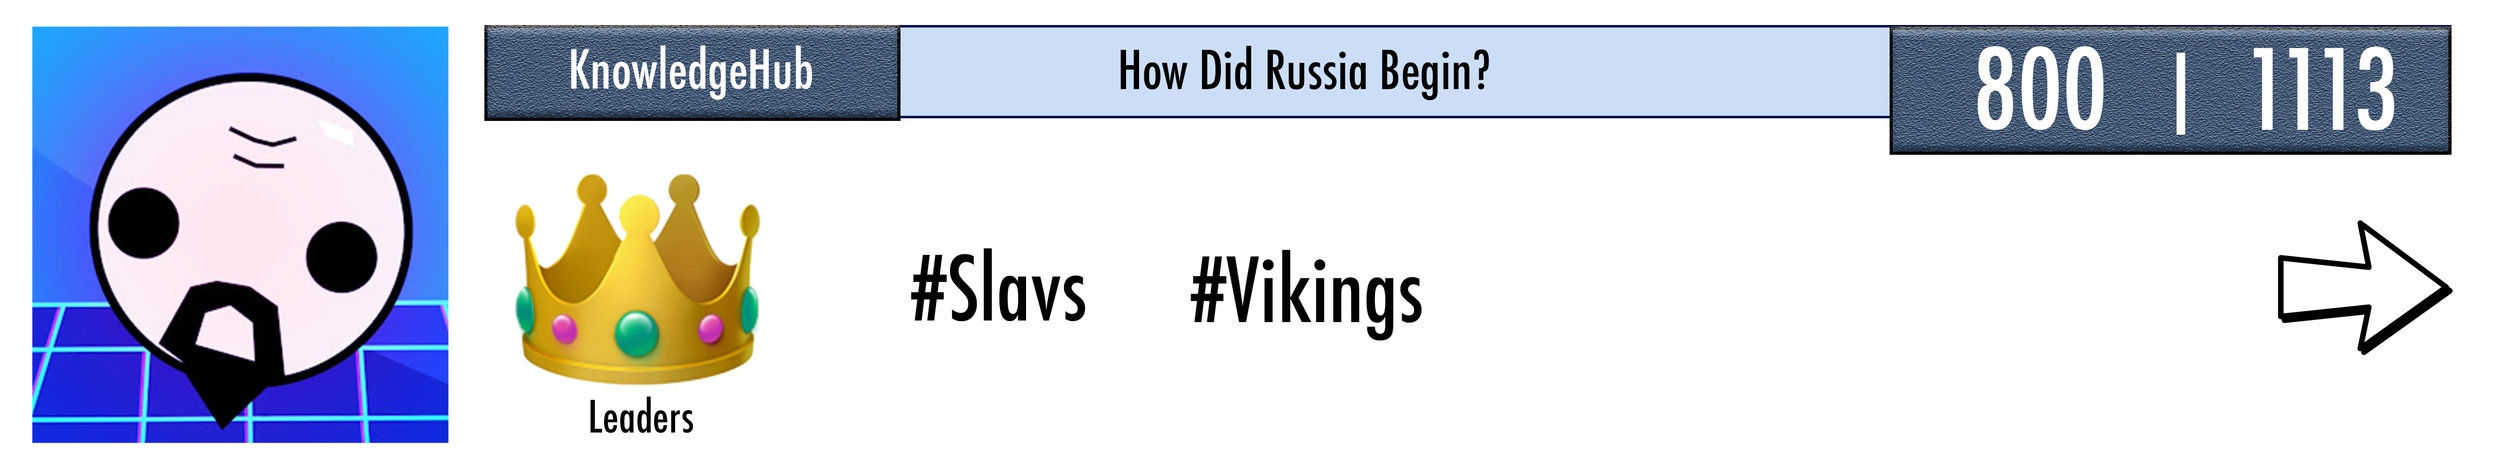 Whoa 800 - 1113 KnowledgeHub How Did Russia Begin.jpg